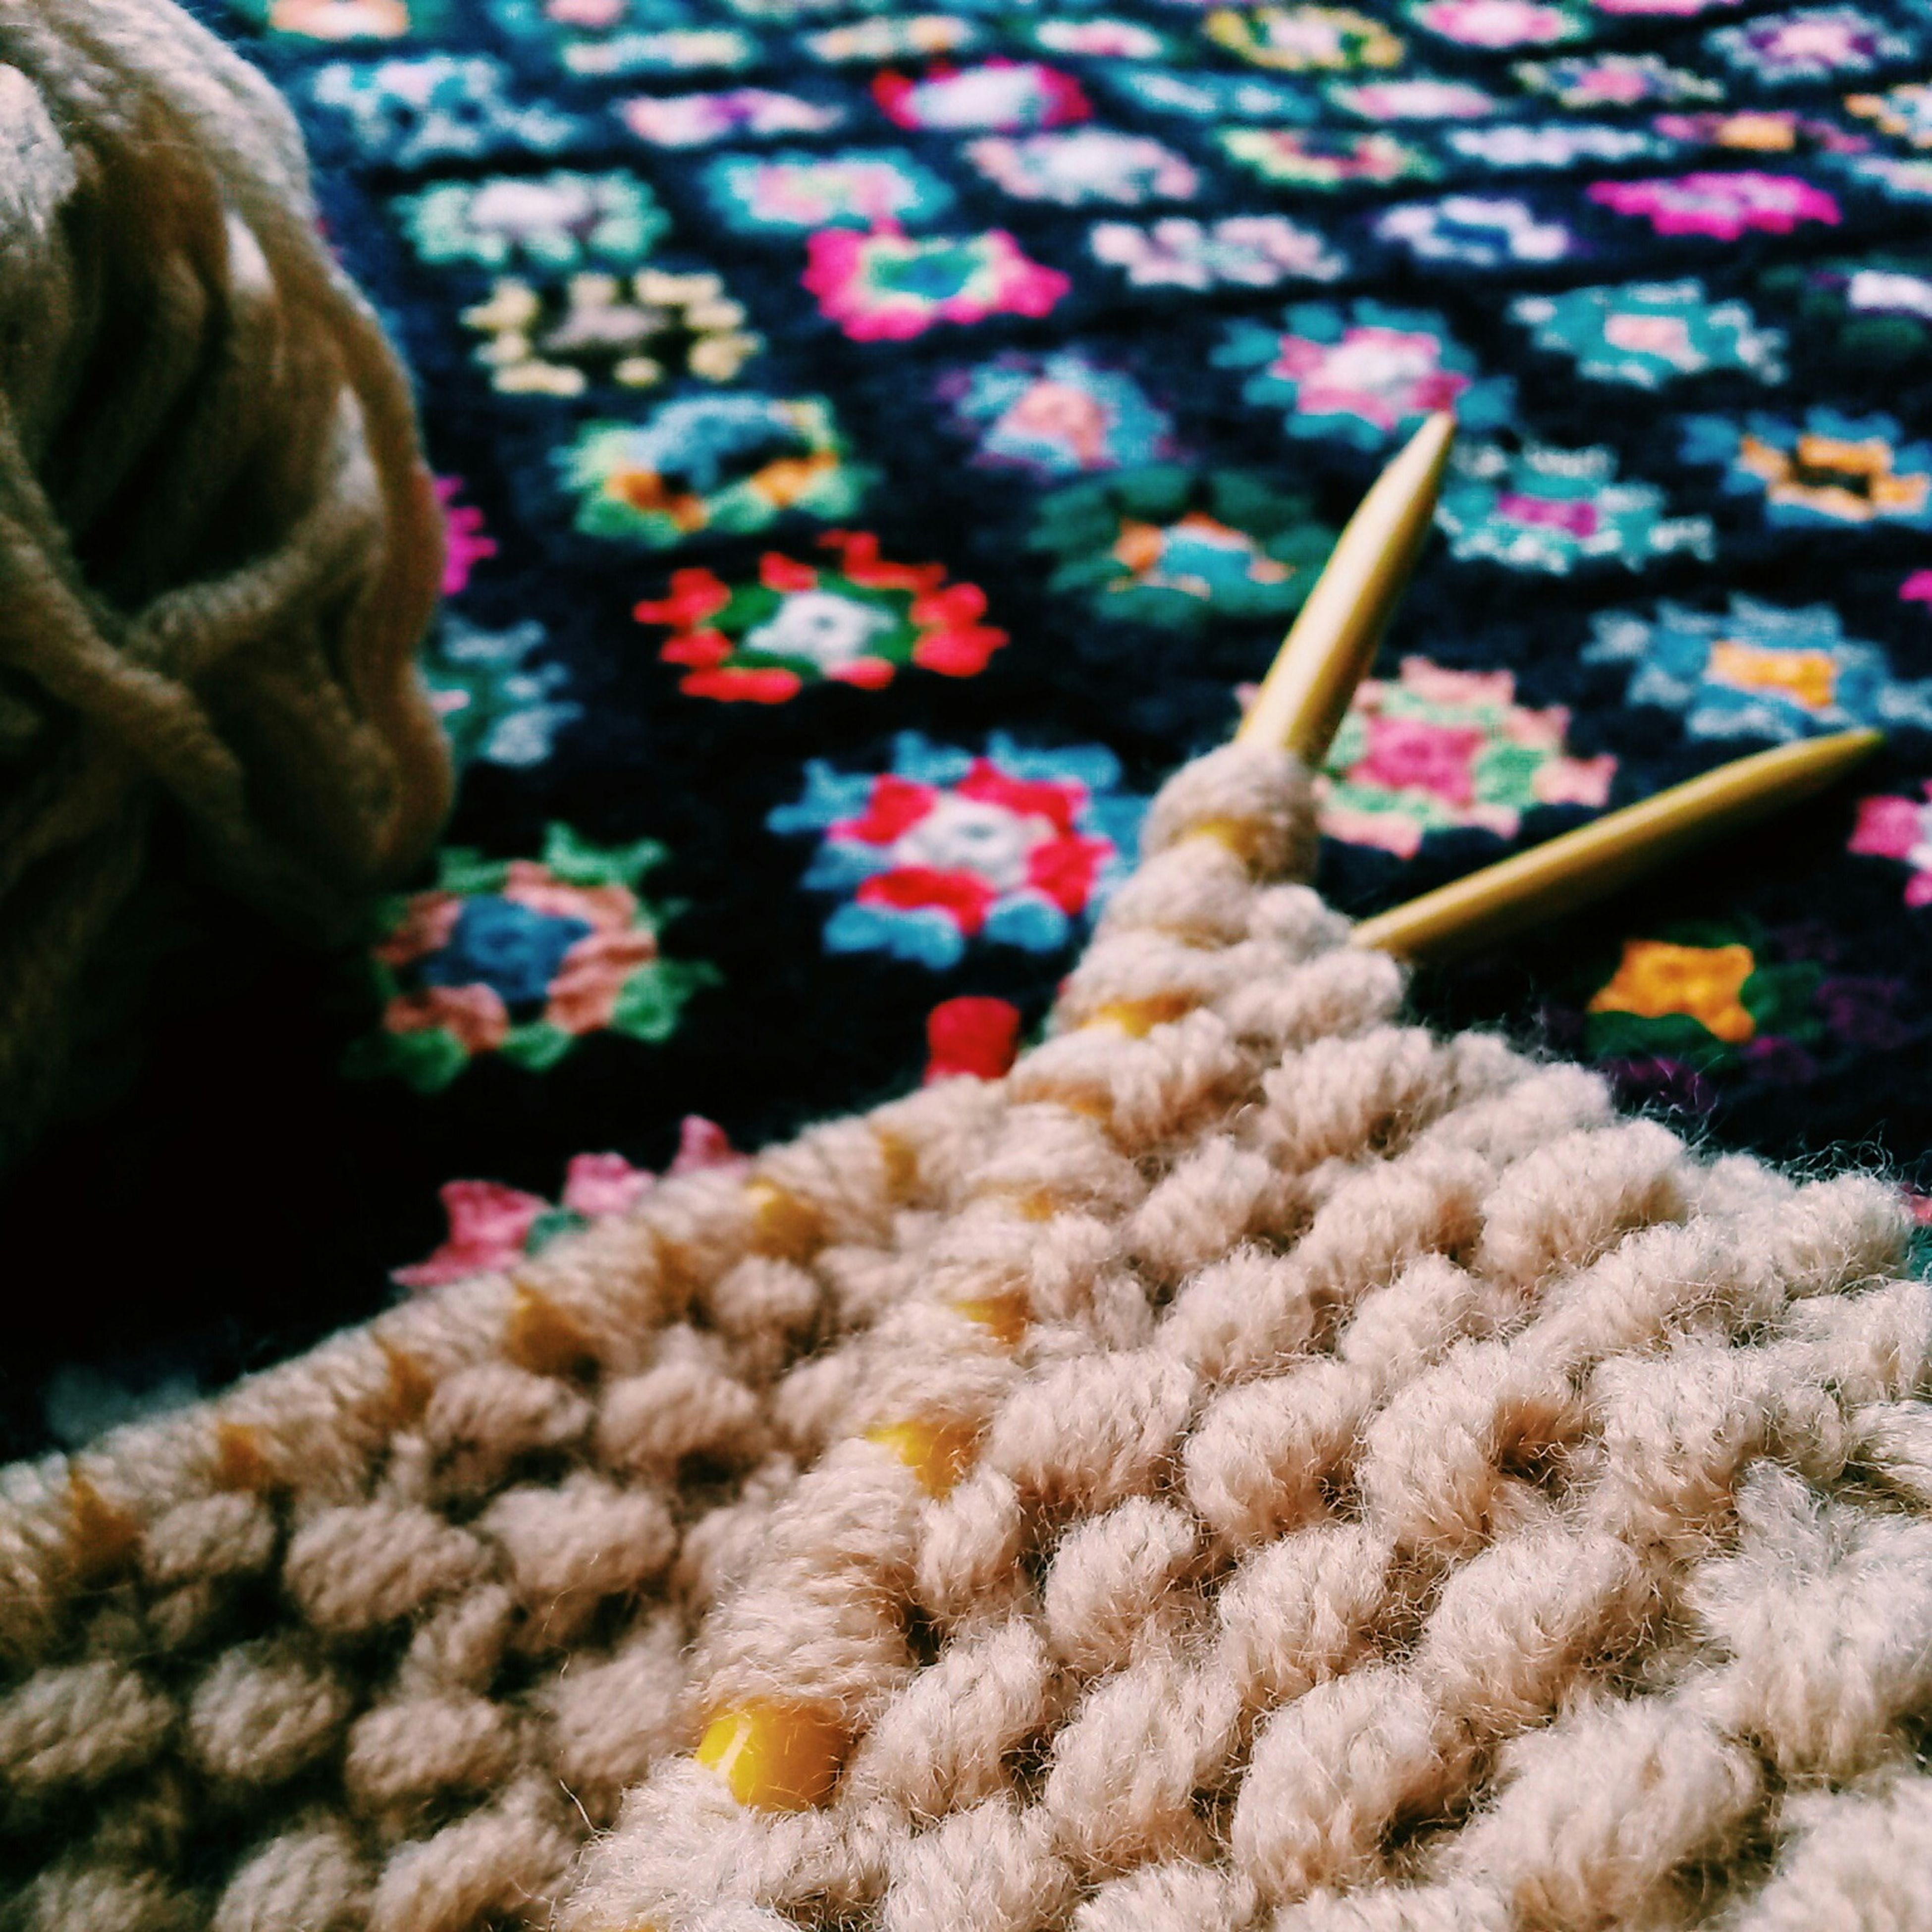 indoors, close-up, still life, focus on foreground, abundance, selective focus, wool, pattern, textile, multi colored, fabric, large group of objects, no people, art and craft, rope, part of, feather, high angle view, detail, retail